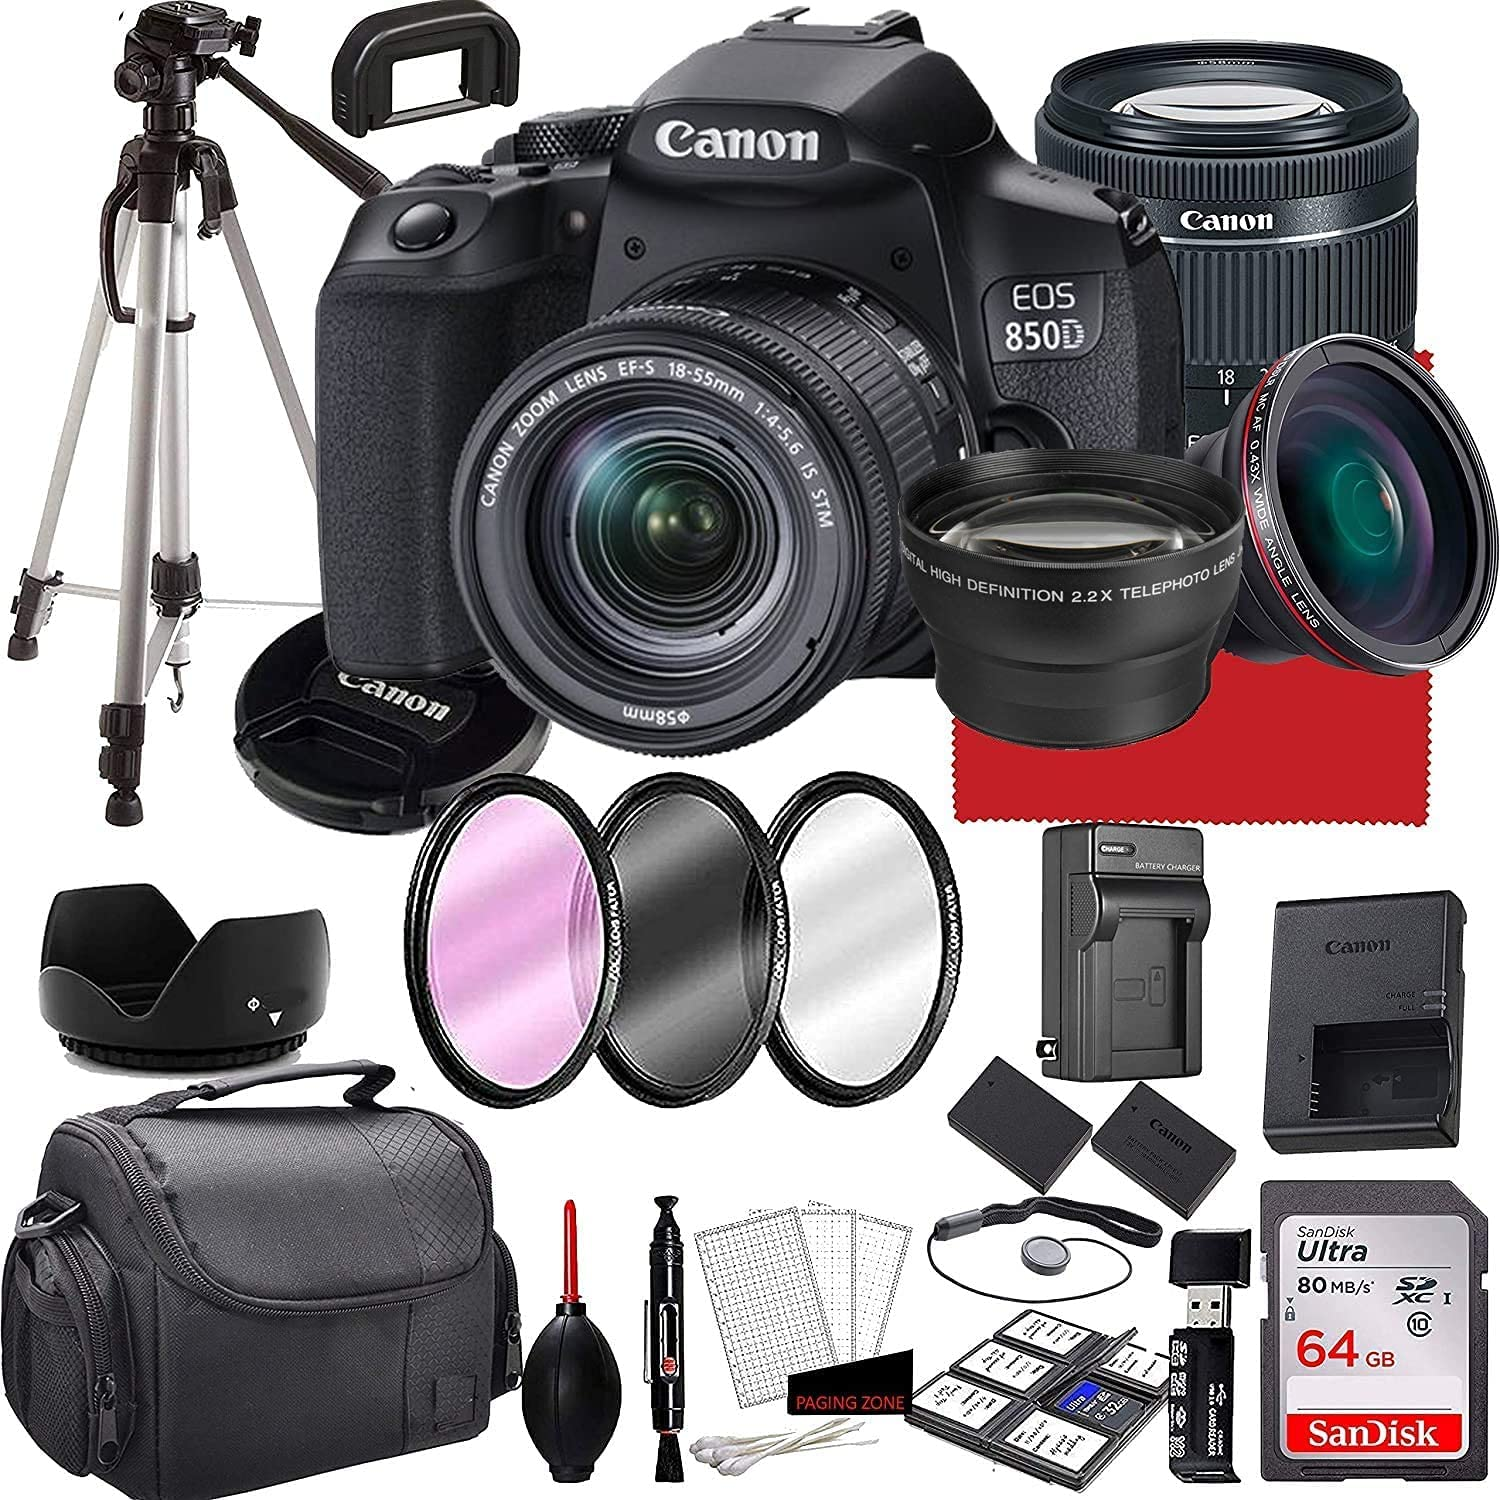 Canon EOS 850D Rebel T8i DSLR Camera 18-55mm f S 4-5.6 Ranking Free Shipping Cheap Bargain Gift TOP20 is with